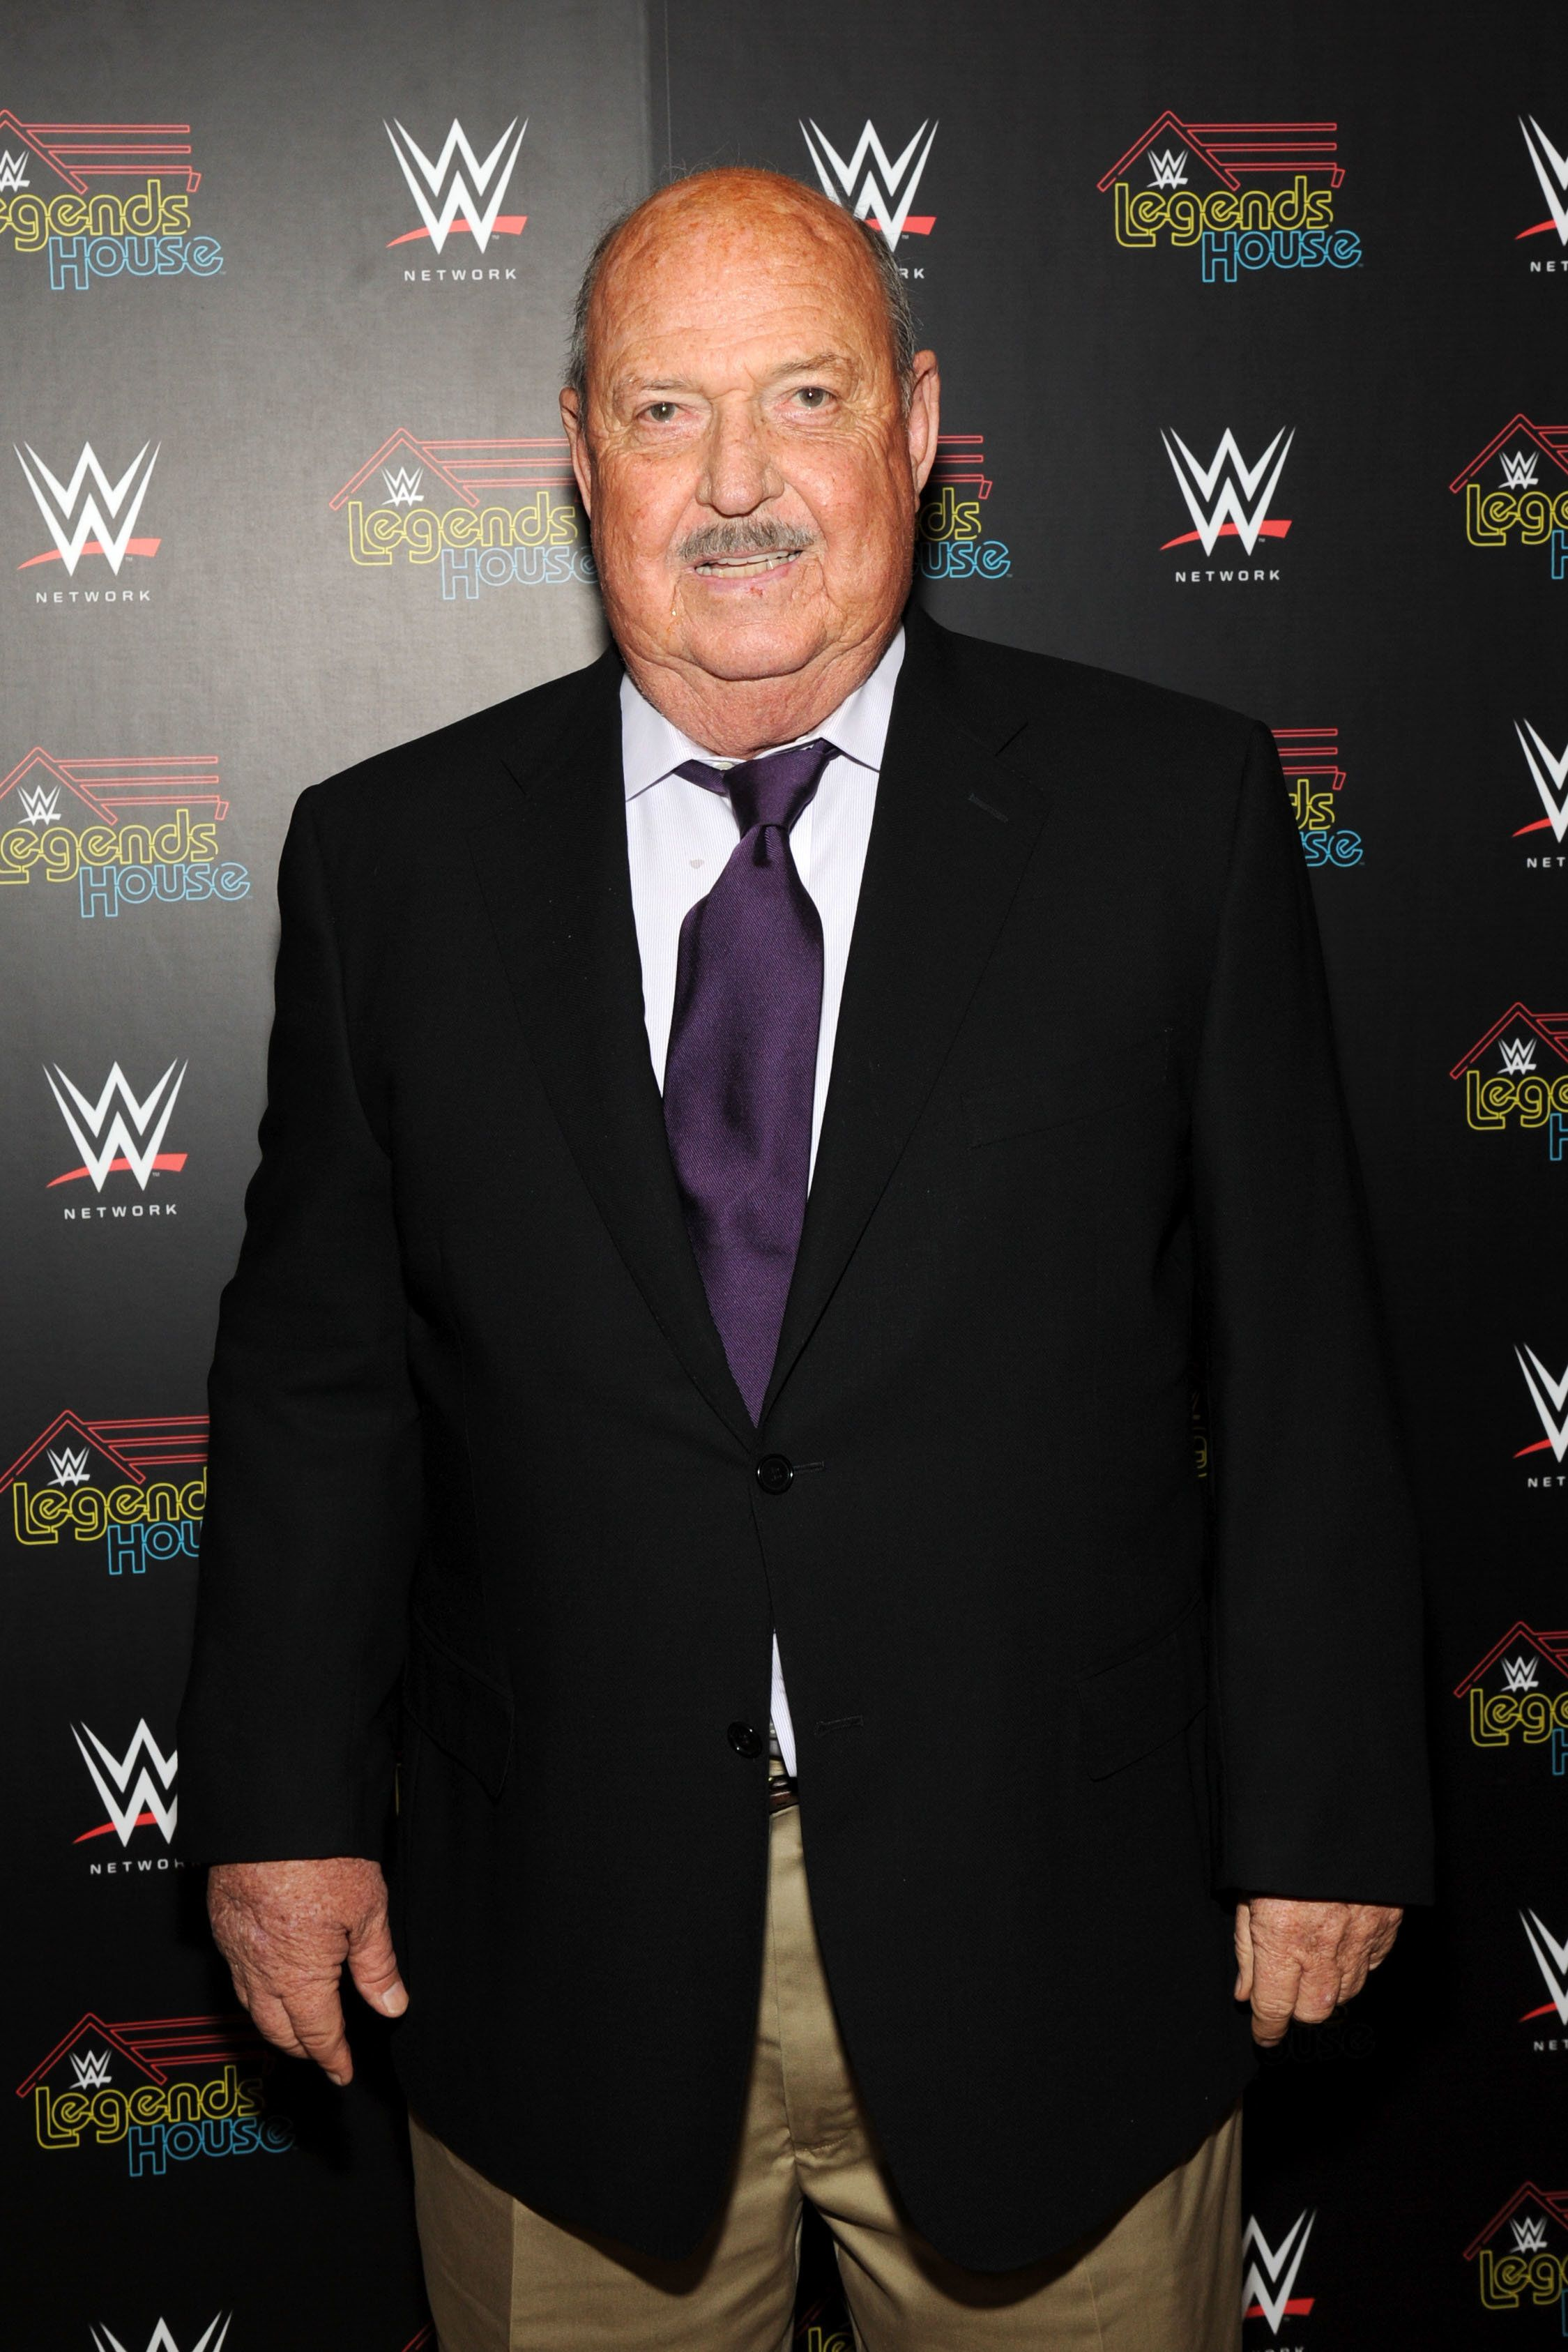 NEW YORK, NY - APRIL 15:  Cast member Gene Okerlund attends the WWE screening of 'Legends' House' at Smith & Wollensky on April 15, 2014 in New York City.  (Photo by Bryan Bedder/Getty Images for WWE)